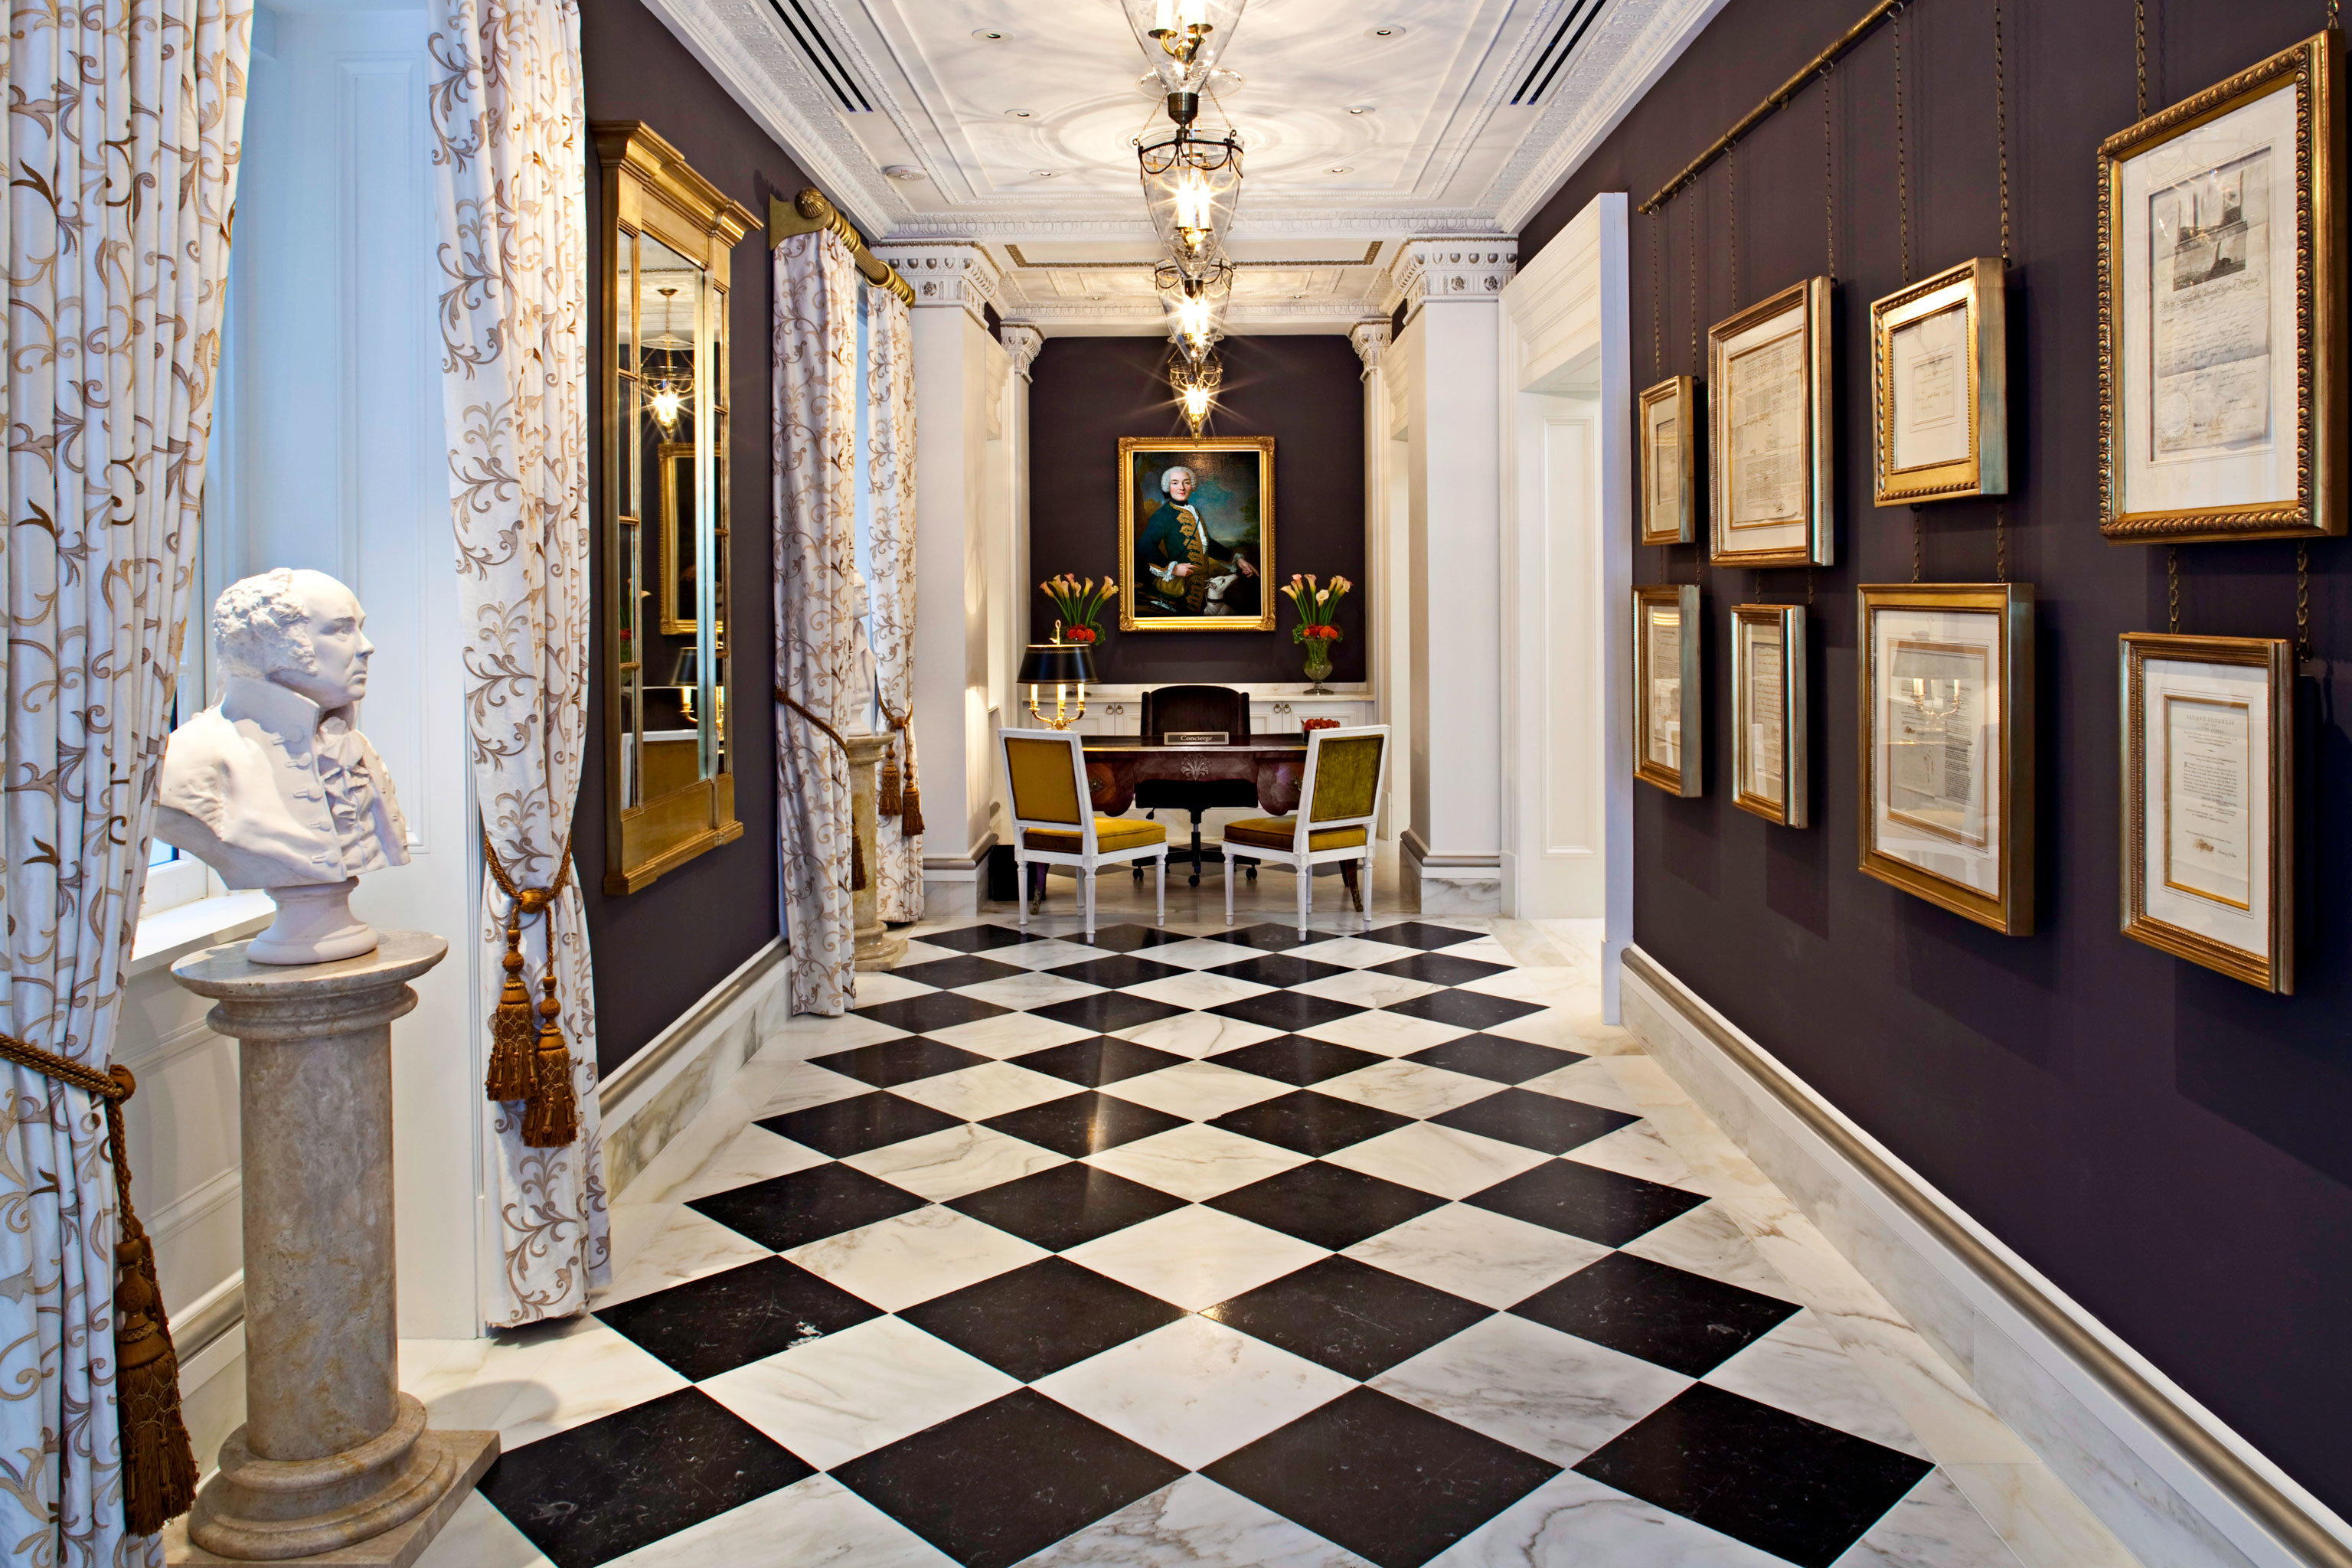 Lobby mansion home tourist attraction hall flooring living room palace